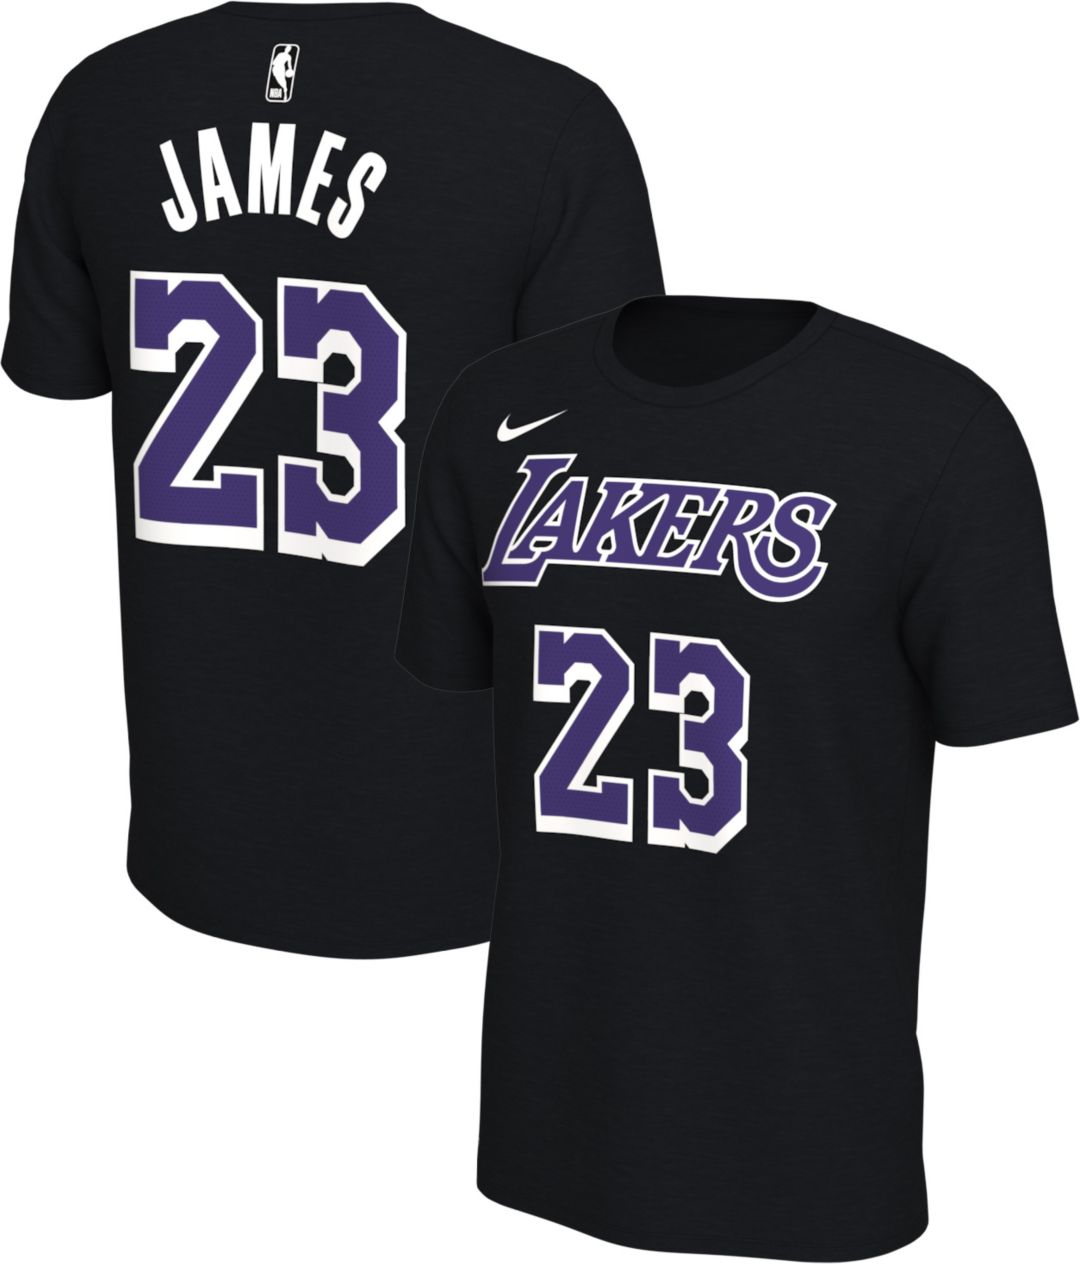 promo code eba79 23e9f Nike Men's Los Angeles Lakers LeBron James #23 Dri-FIT Black T-Shirt